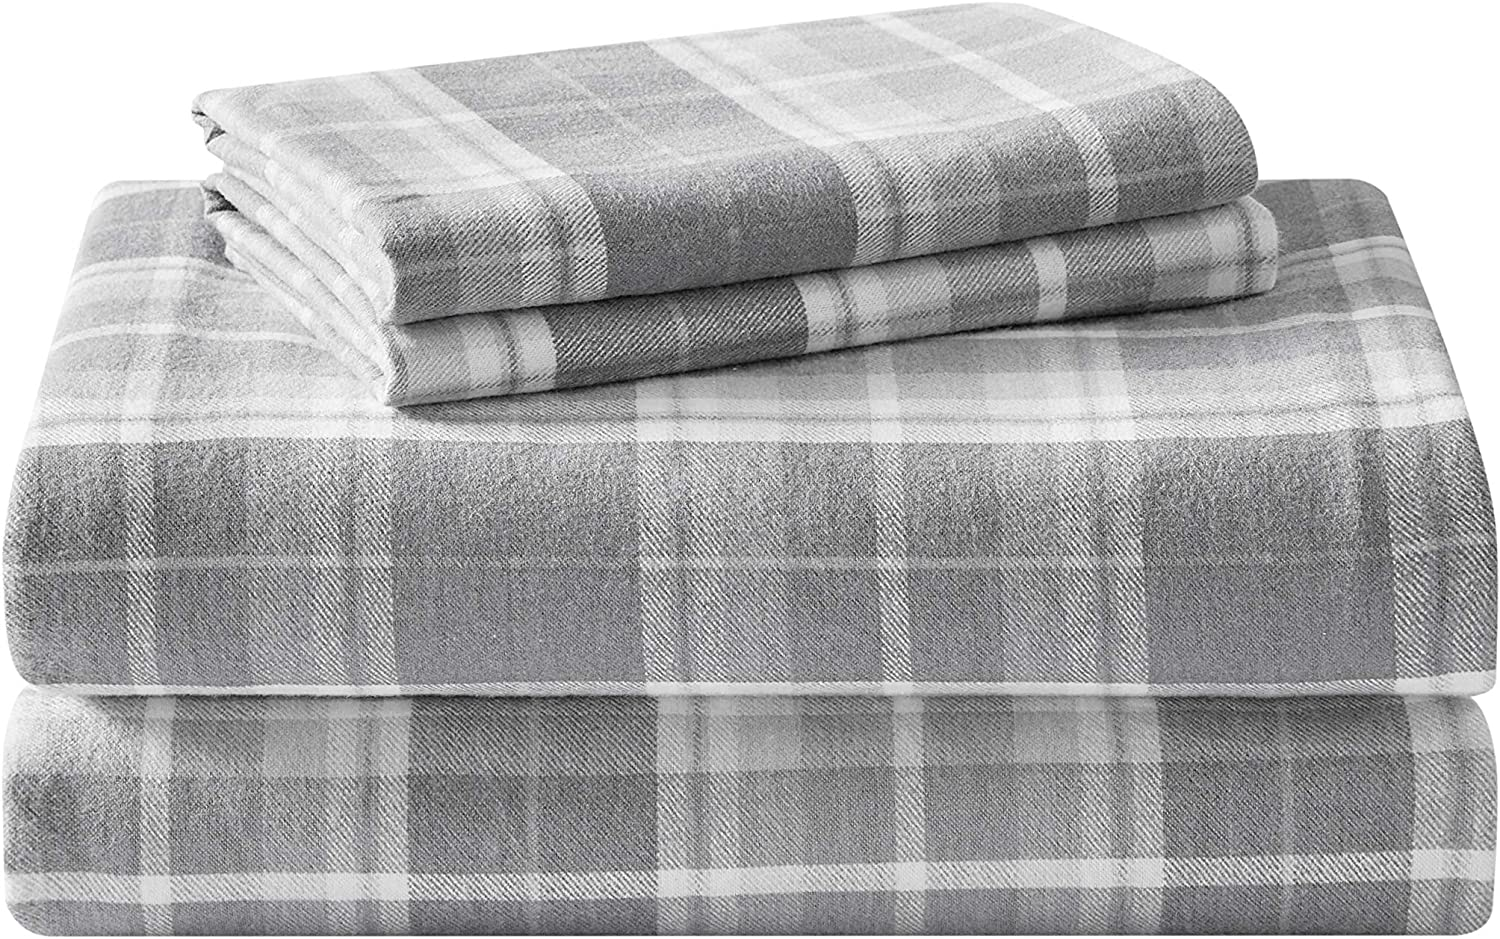 Amazon Com Laura Ashley Home Flannel Collection Premium Ultra Soft Cozy Lightweight Cotton Flannel Bedding Sheet Set Wrinkle Anti Fade Stain Resistant Hypoallergenic Home Kitchen